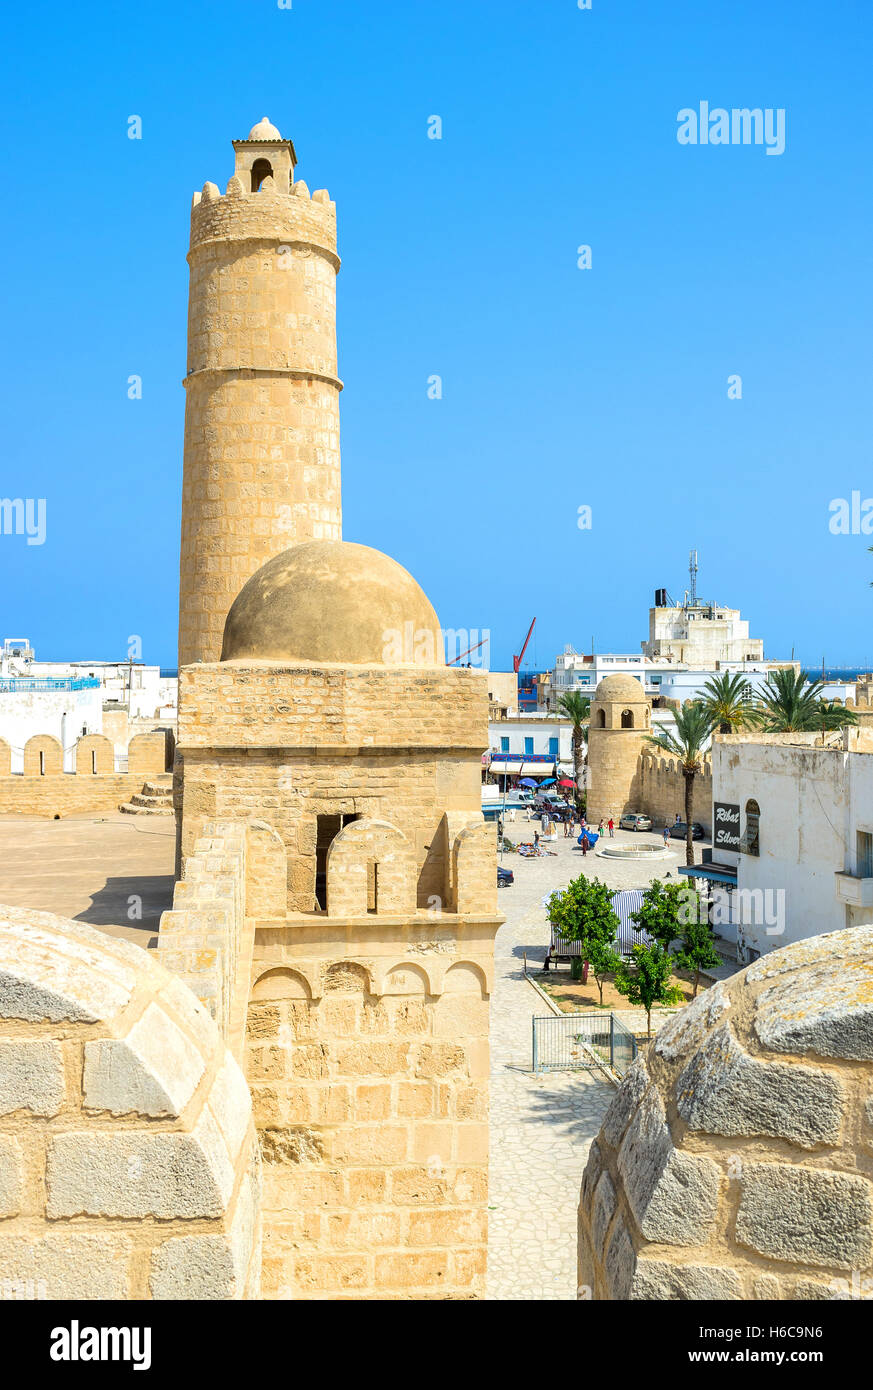 The ramparts of the Ribat citadel is the nice viewpoint that overlooks the old town, port and the stone tower - Stock Image